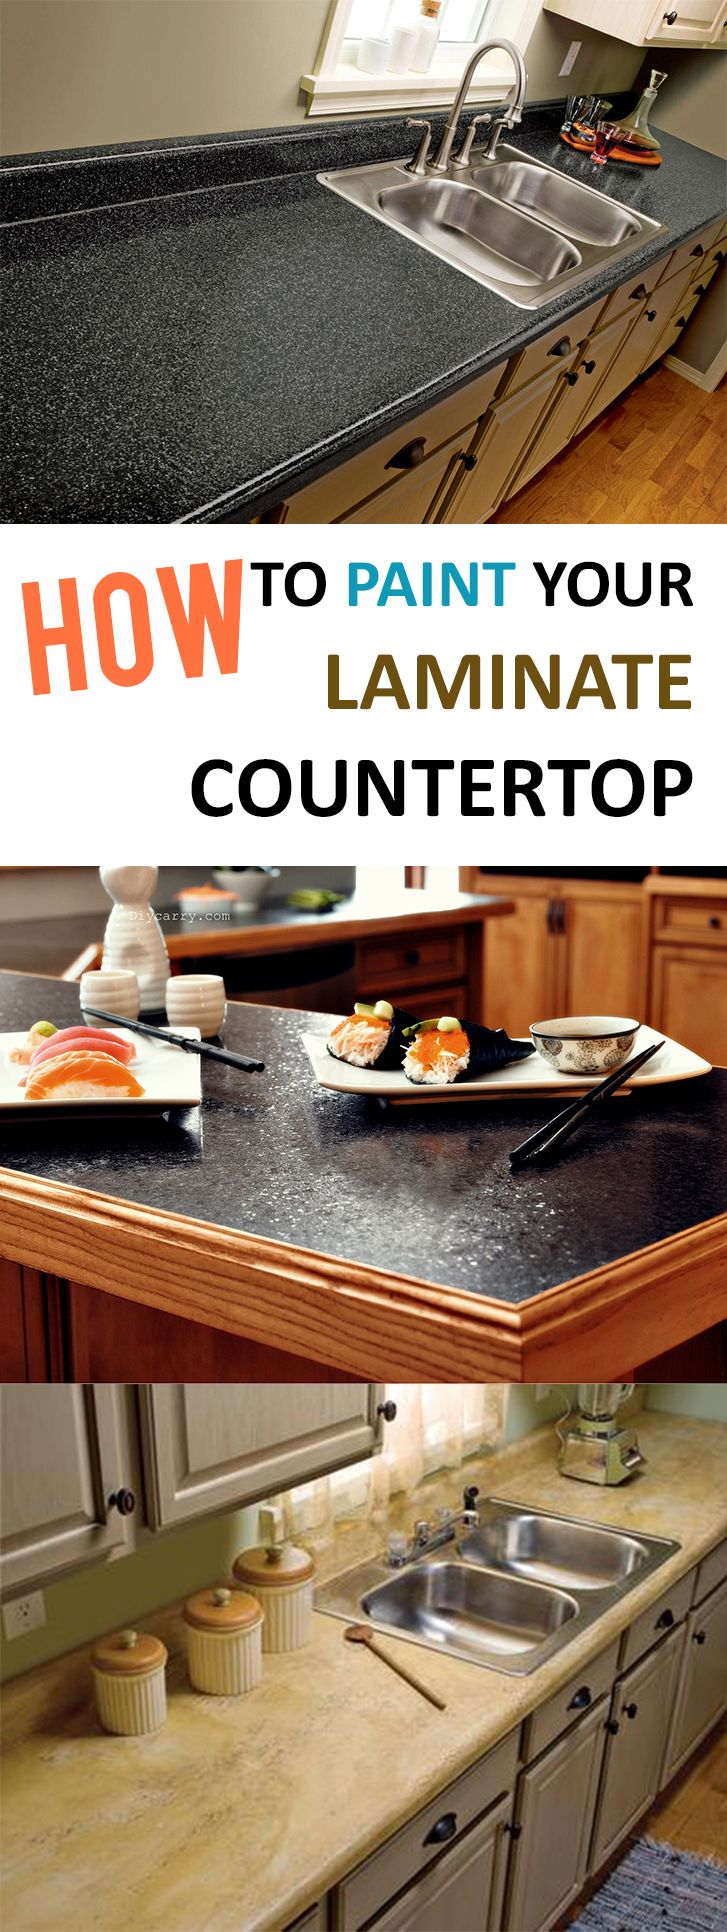 inexpensive kitchen countertops How to Paint Your Laminate Countertop